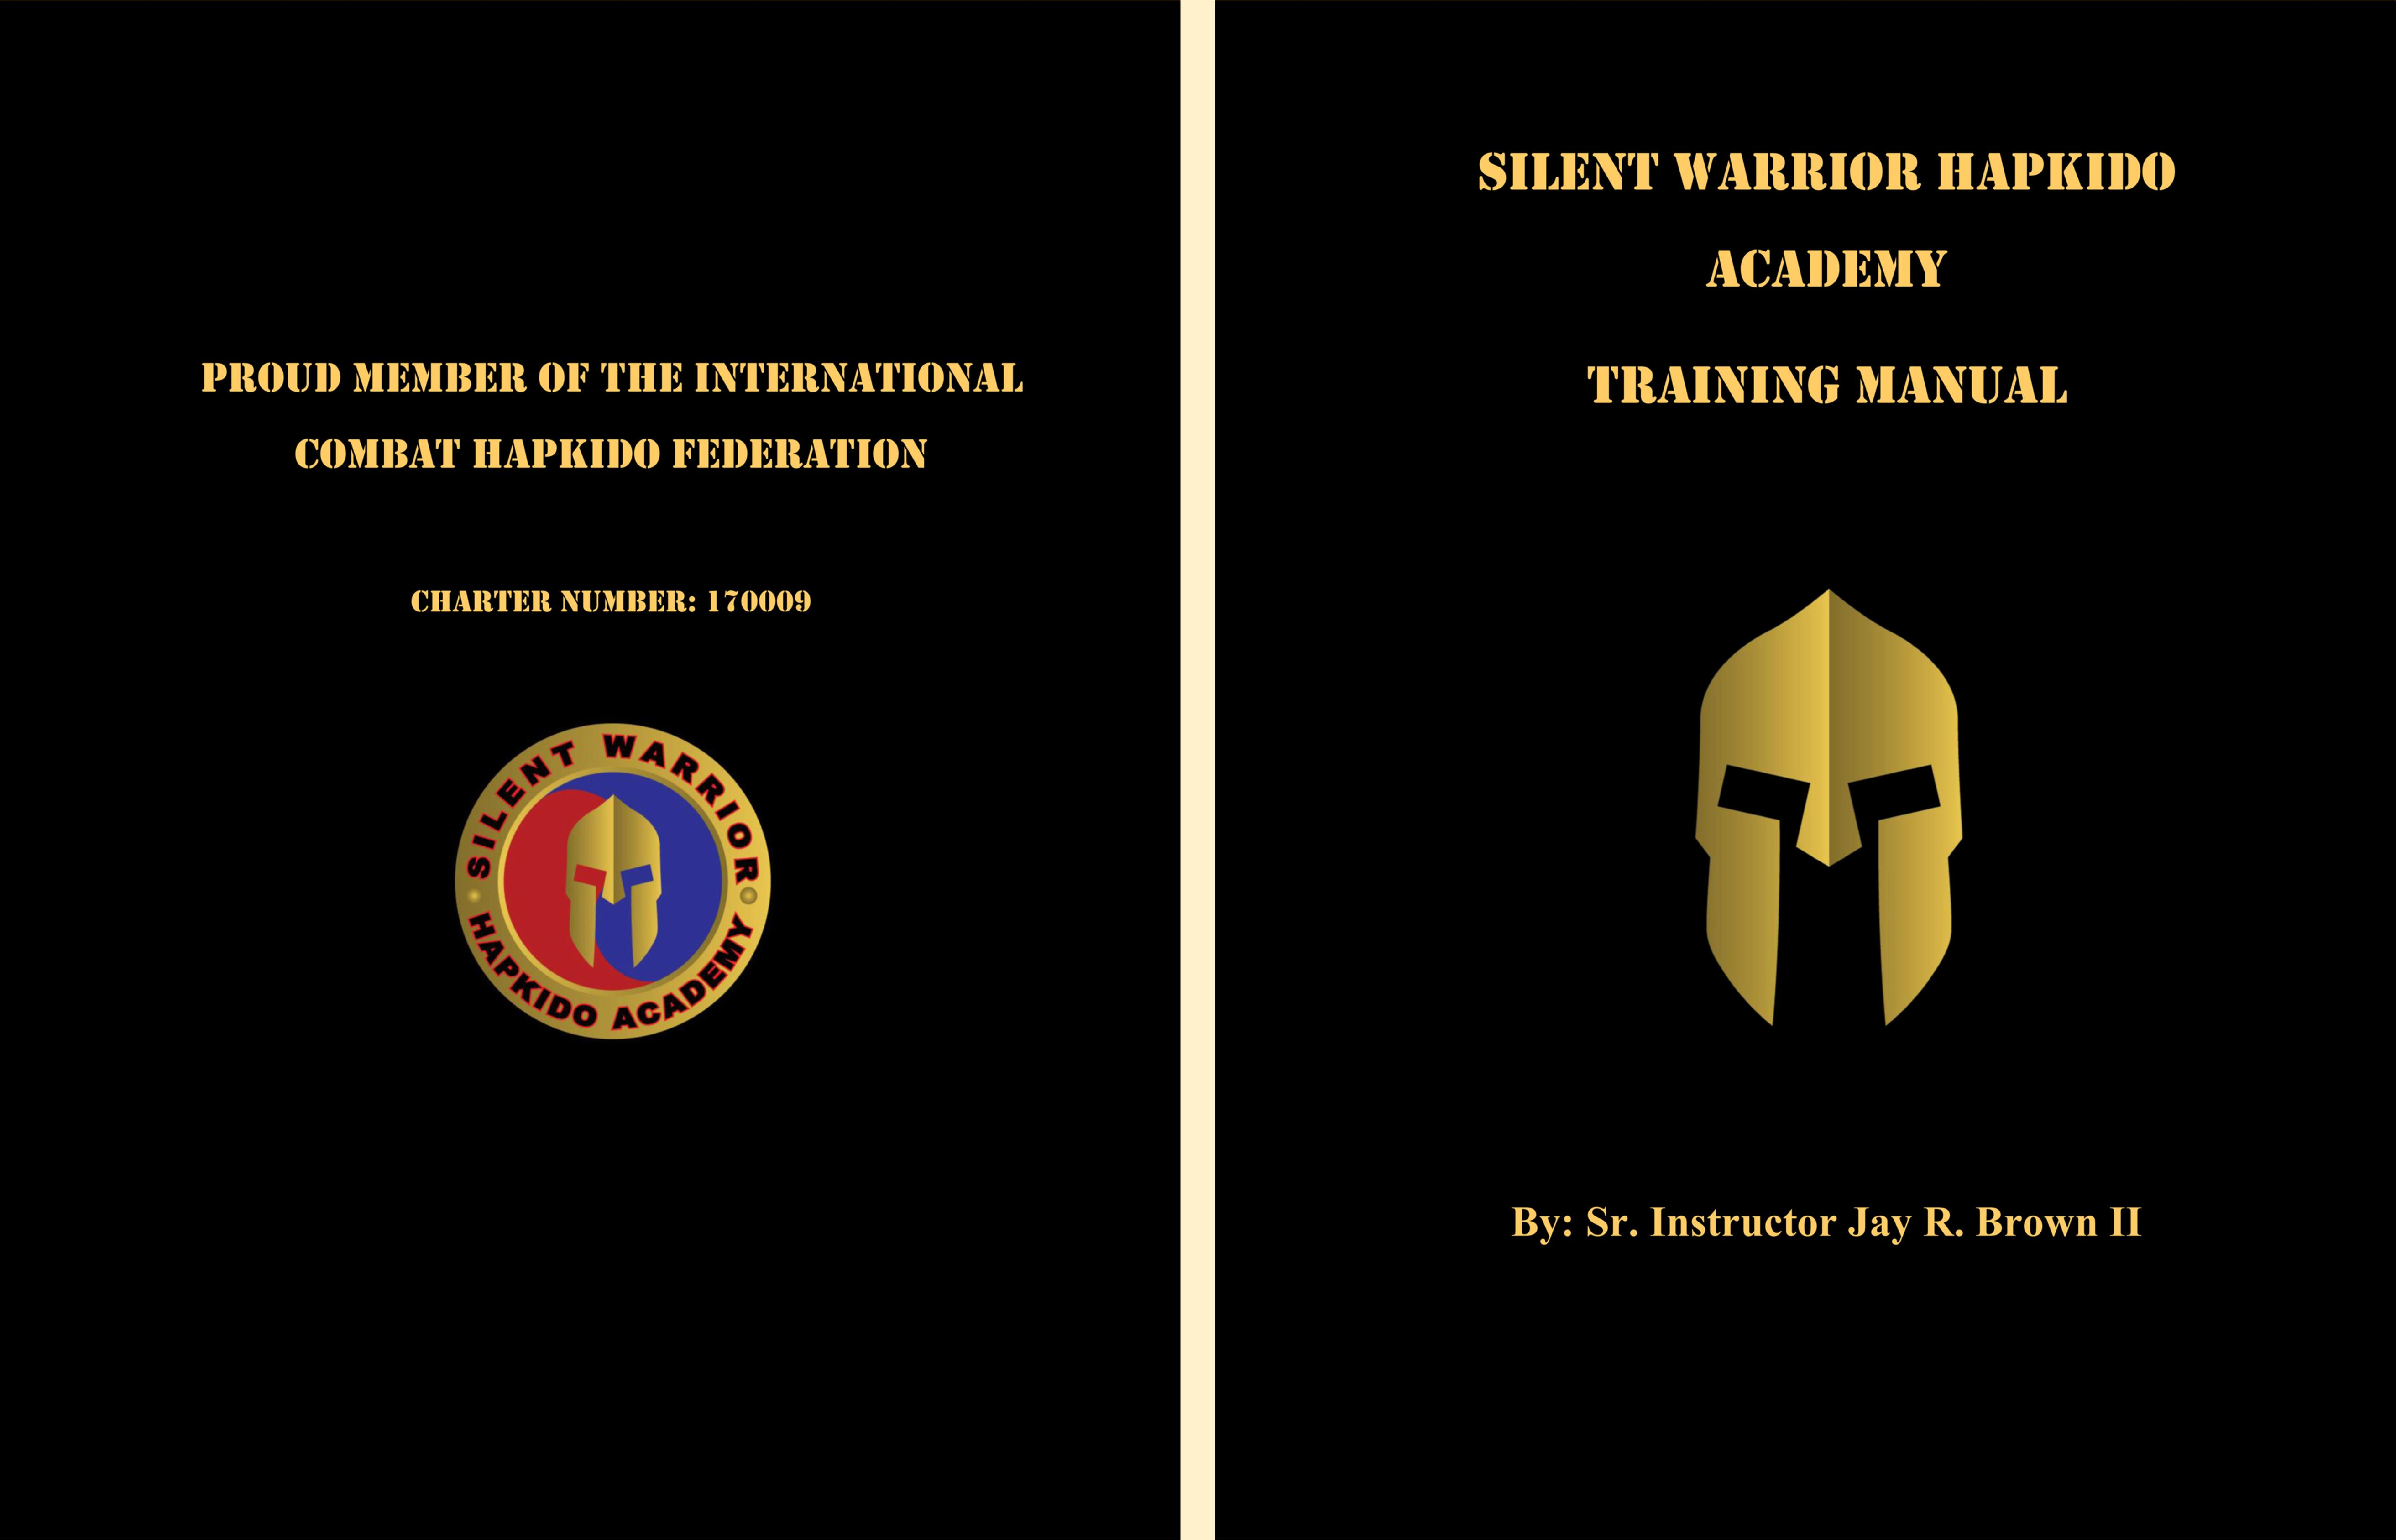 Hapkido manual ebook array silent warrior hapkido academy training manual by jay brown 15 00 rh thebookpatch com fandeluxe Gallery